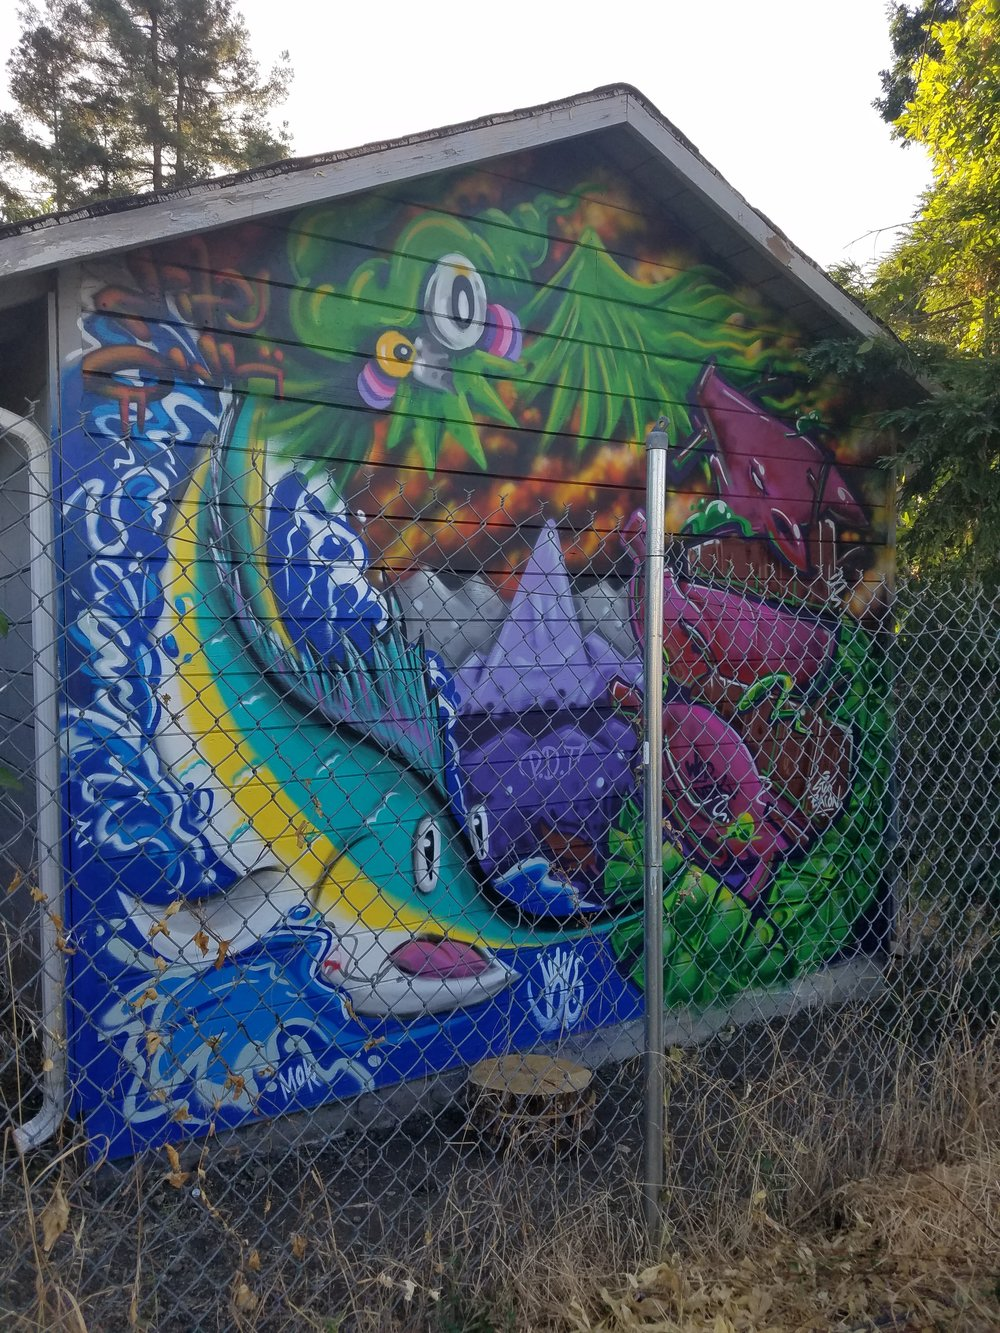 Land, Air, Sea Theme Mural For Client Collaboration with Nite Owl and Stay Bacon Walnut Creek 2018